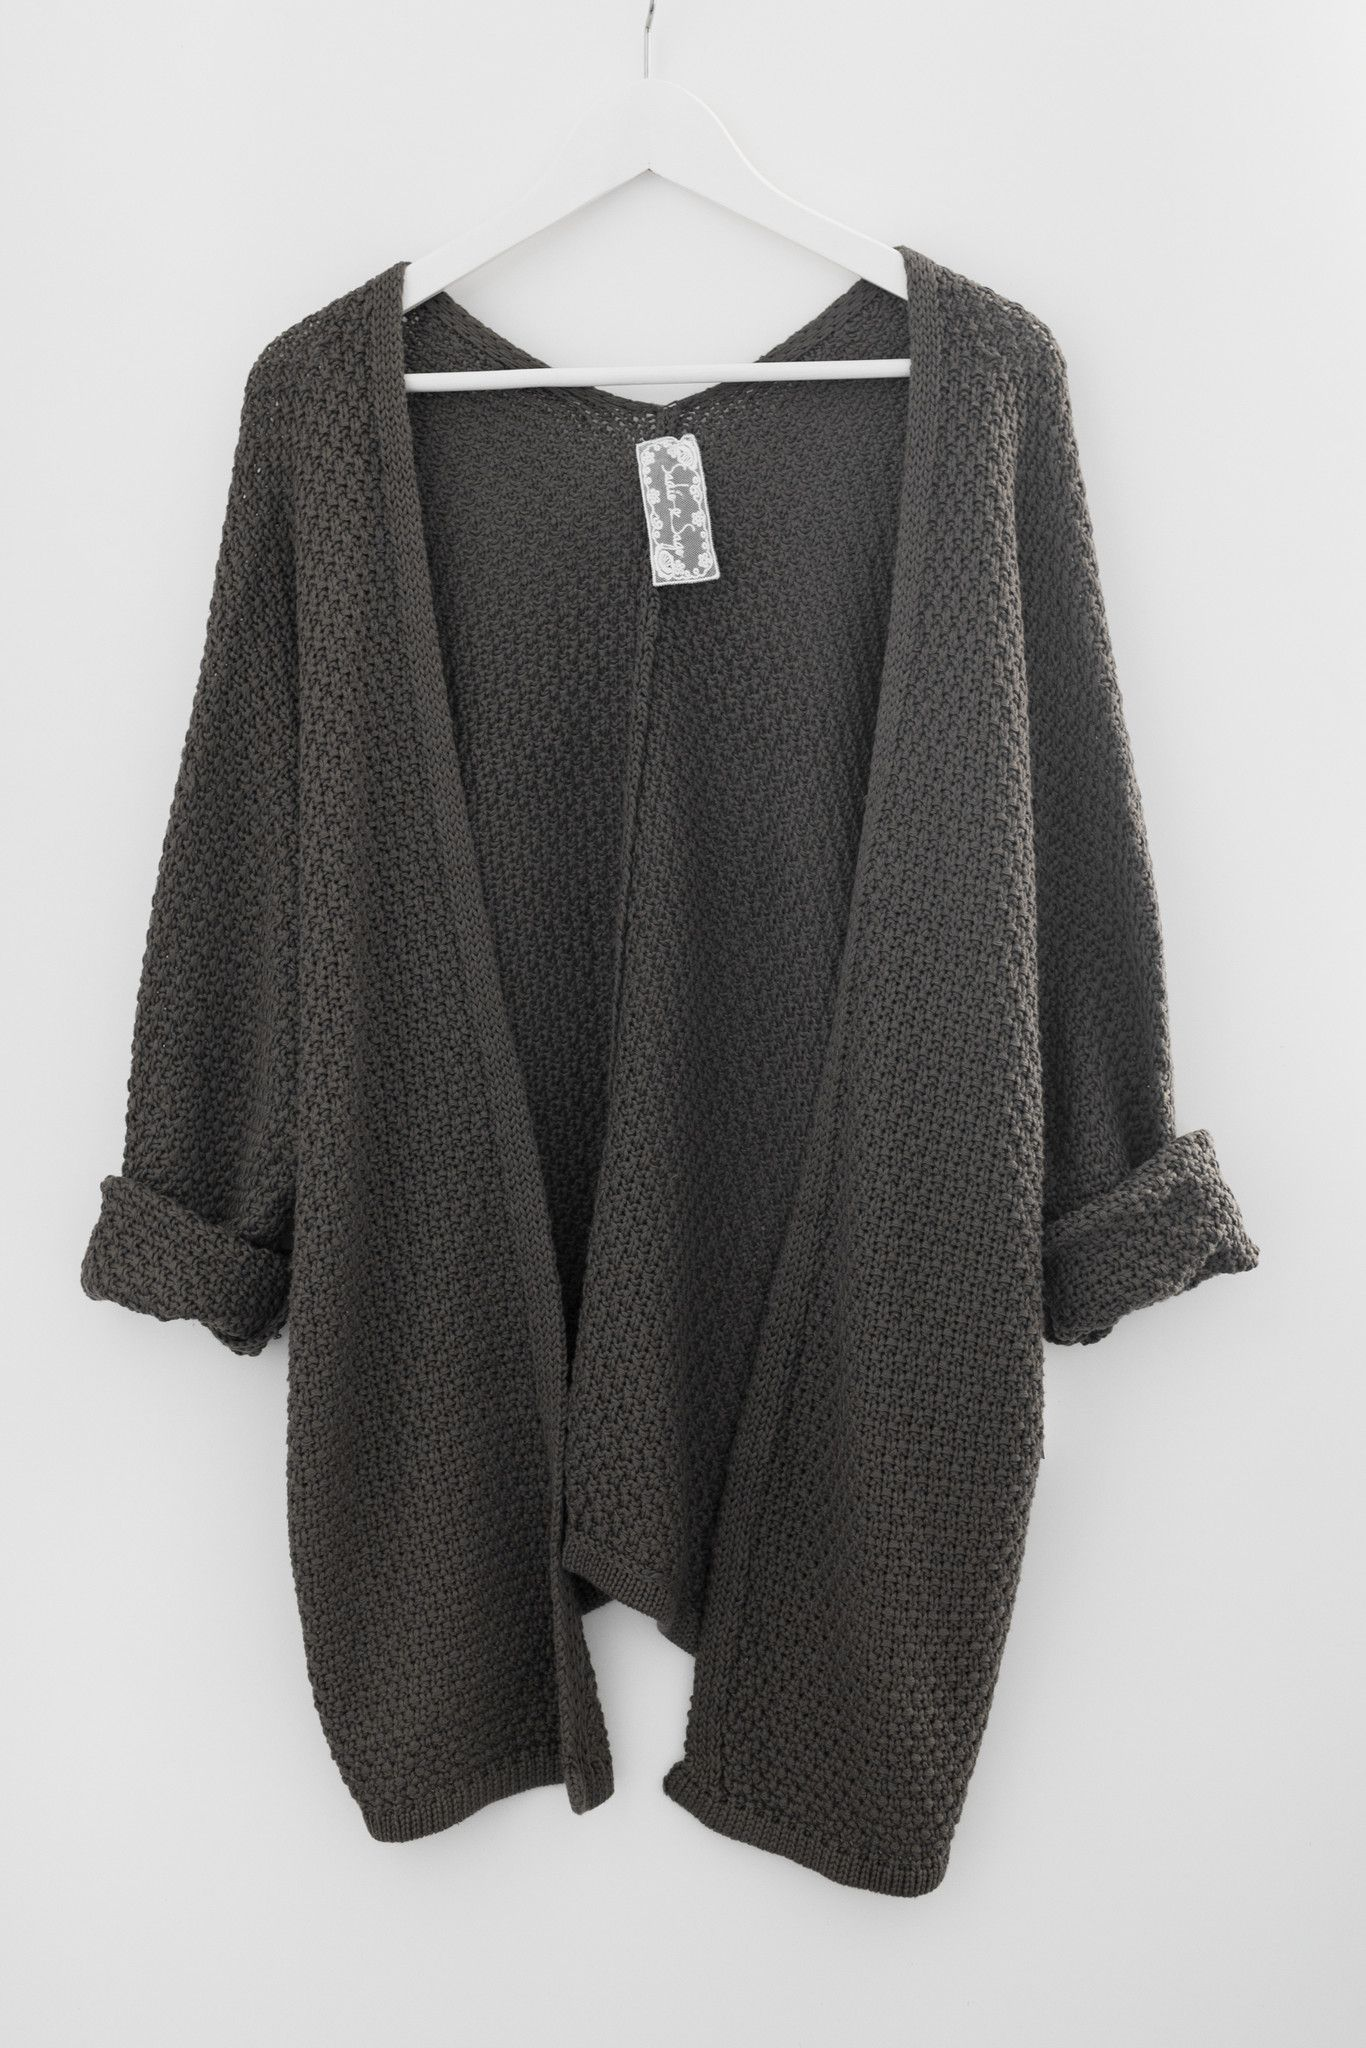 Olive Indie Knit Cardigan | Rags, bags and shoes | Pinterest ...